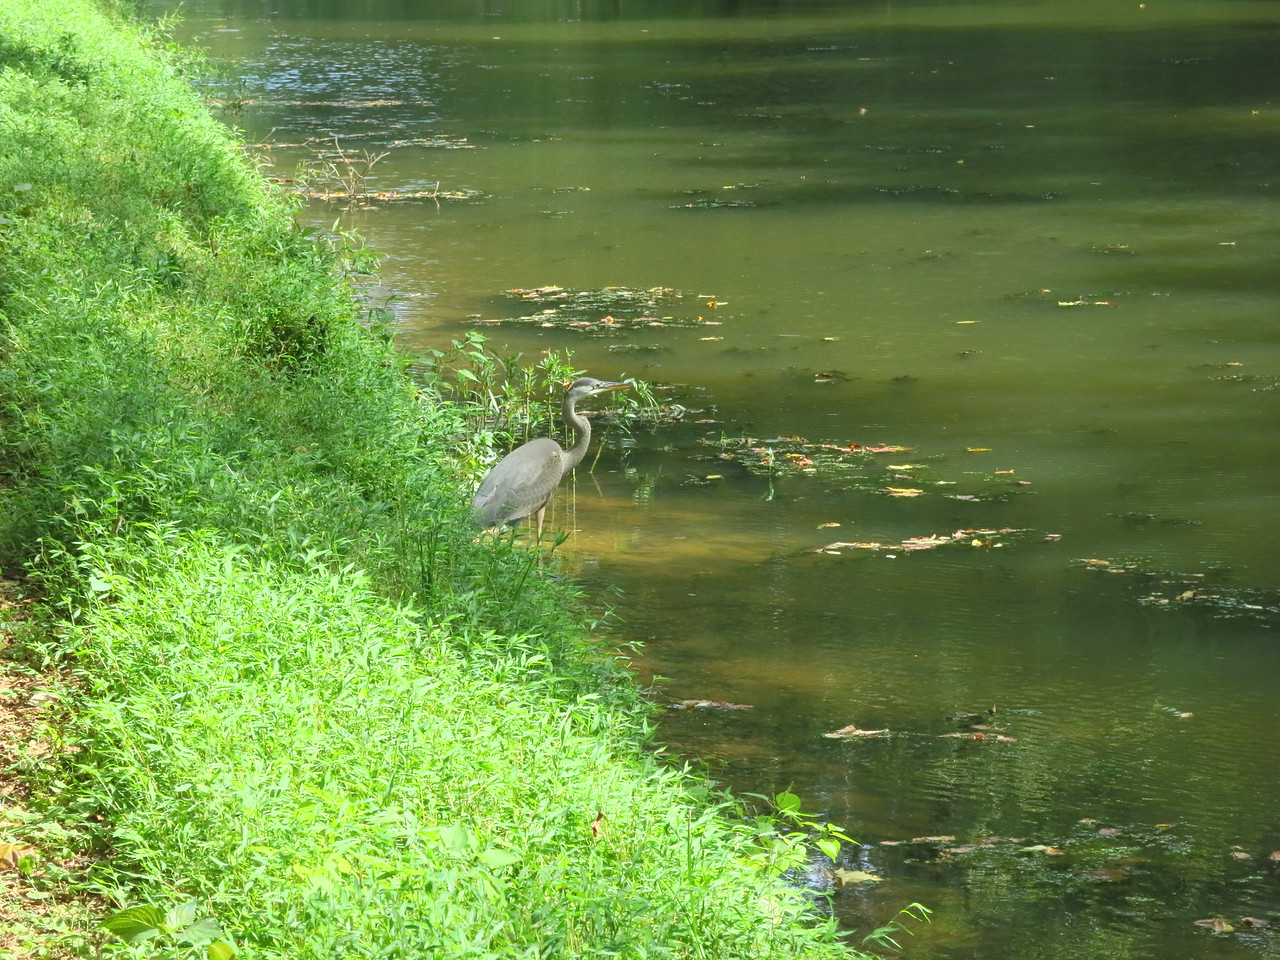 Heron next to towpath and at the edge of the canal